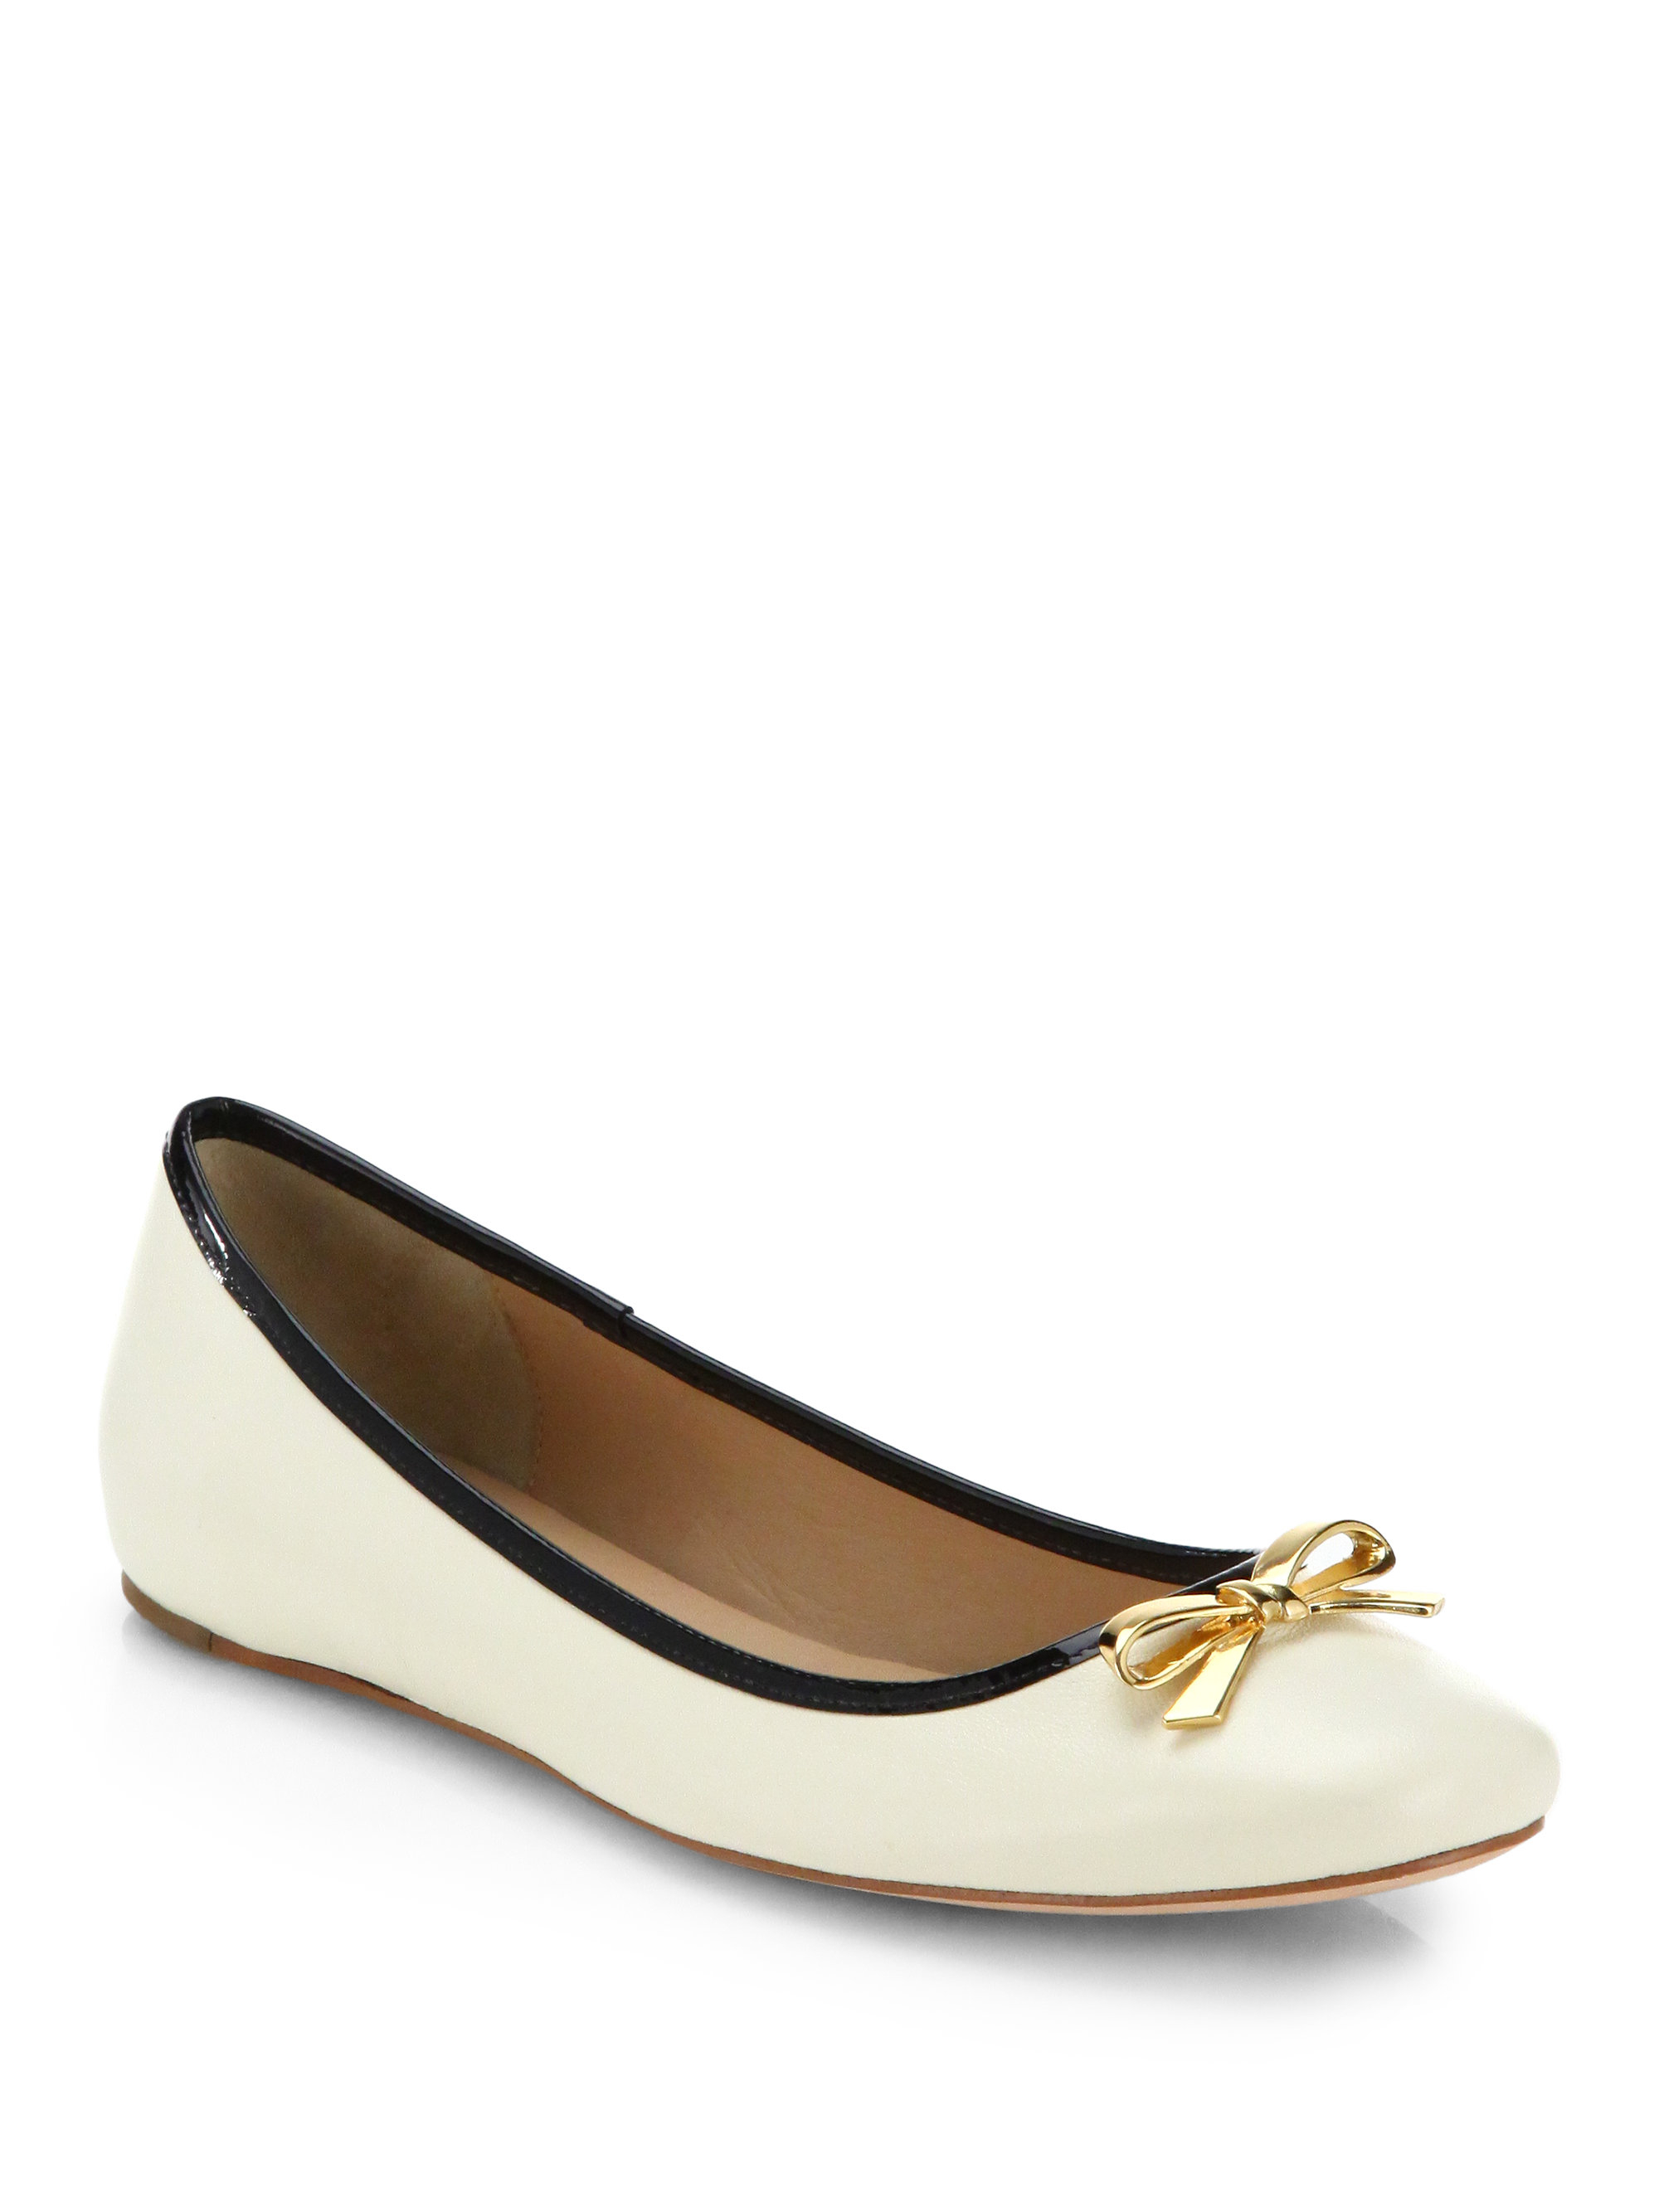 kate spade new york villa ballet flats in white lyst